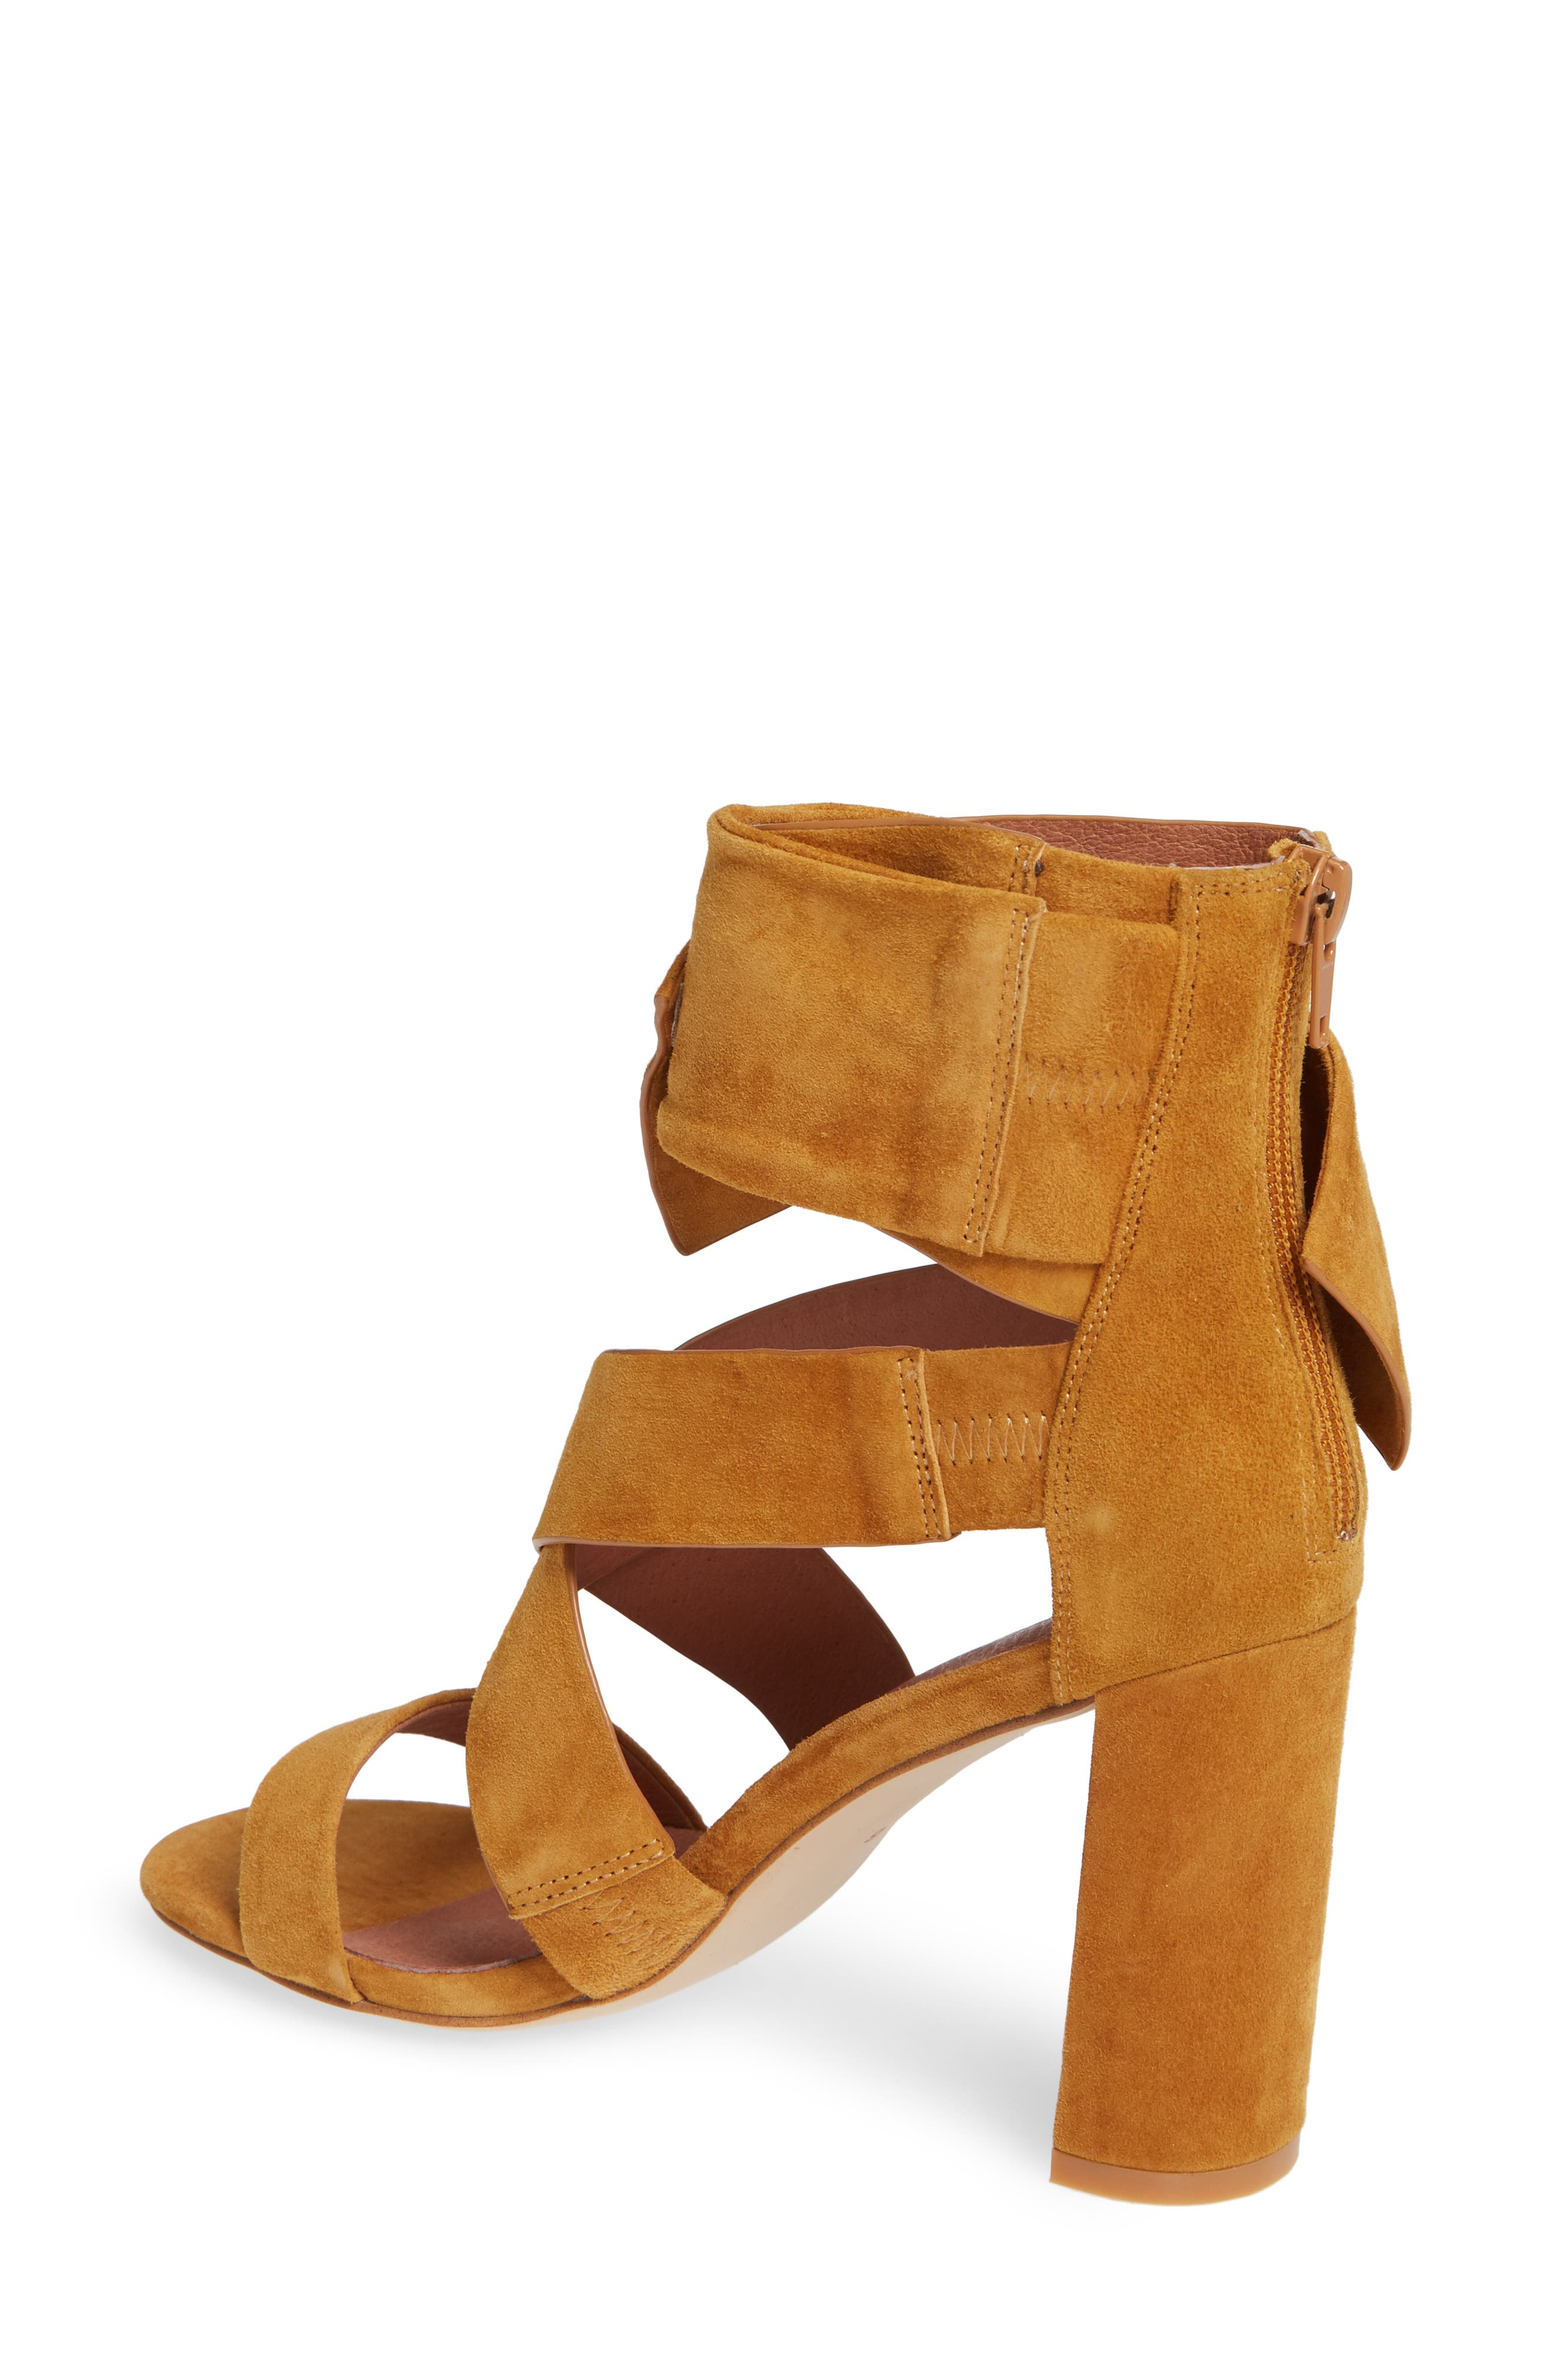 Despoina Sandal,                             Alternate thumbnail 2, color,                             Mustard Suede Leather